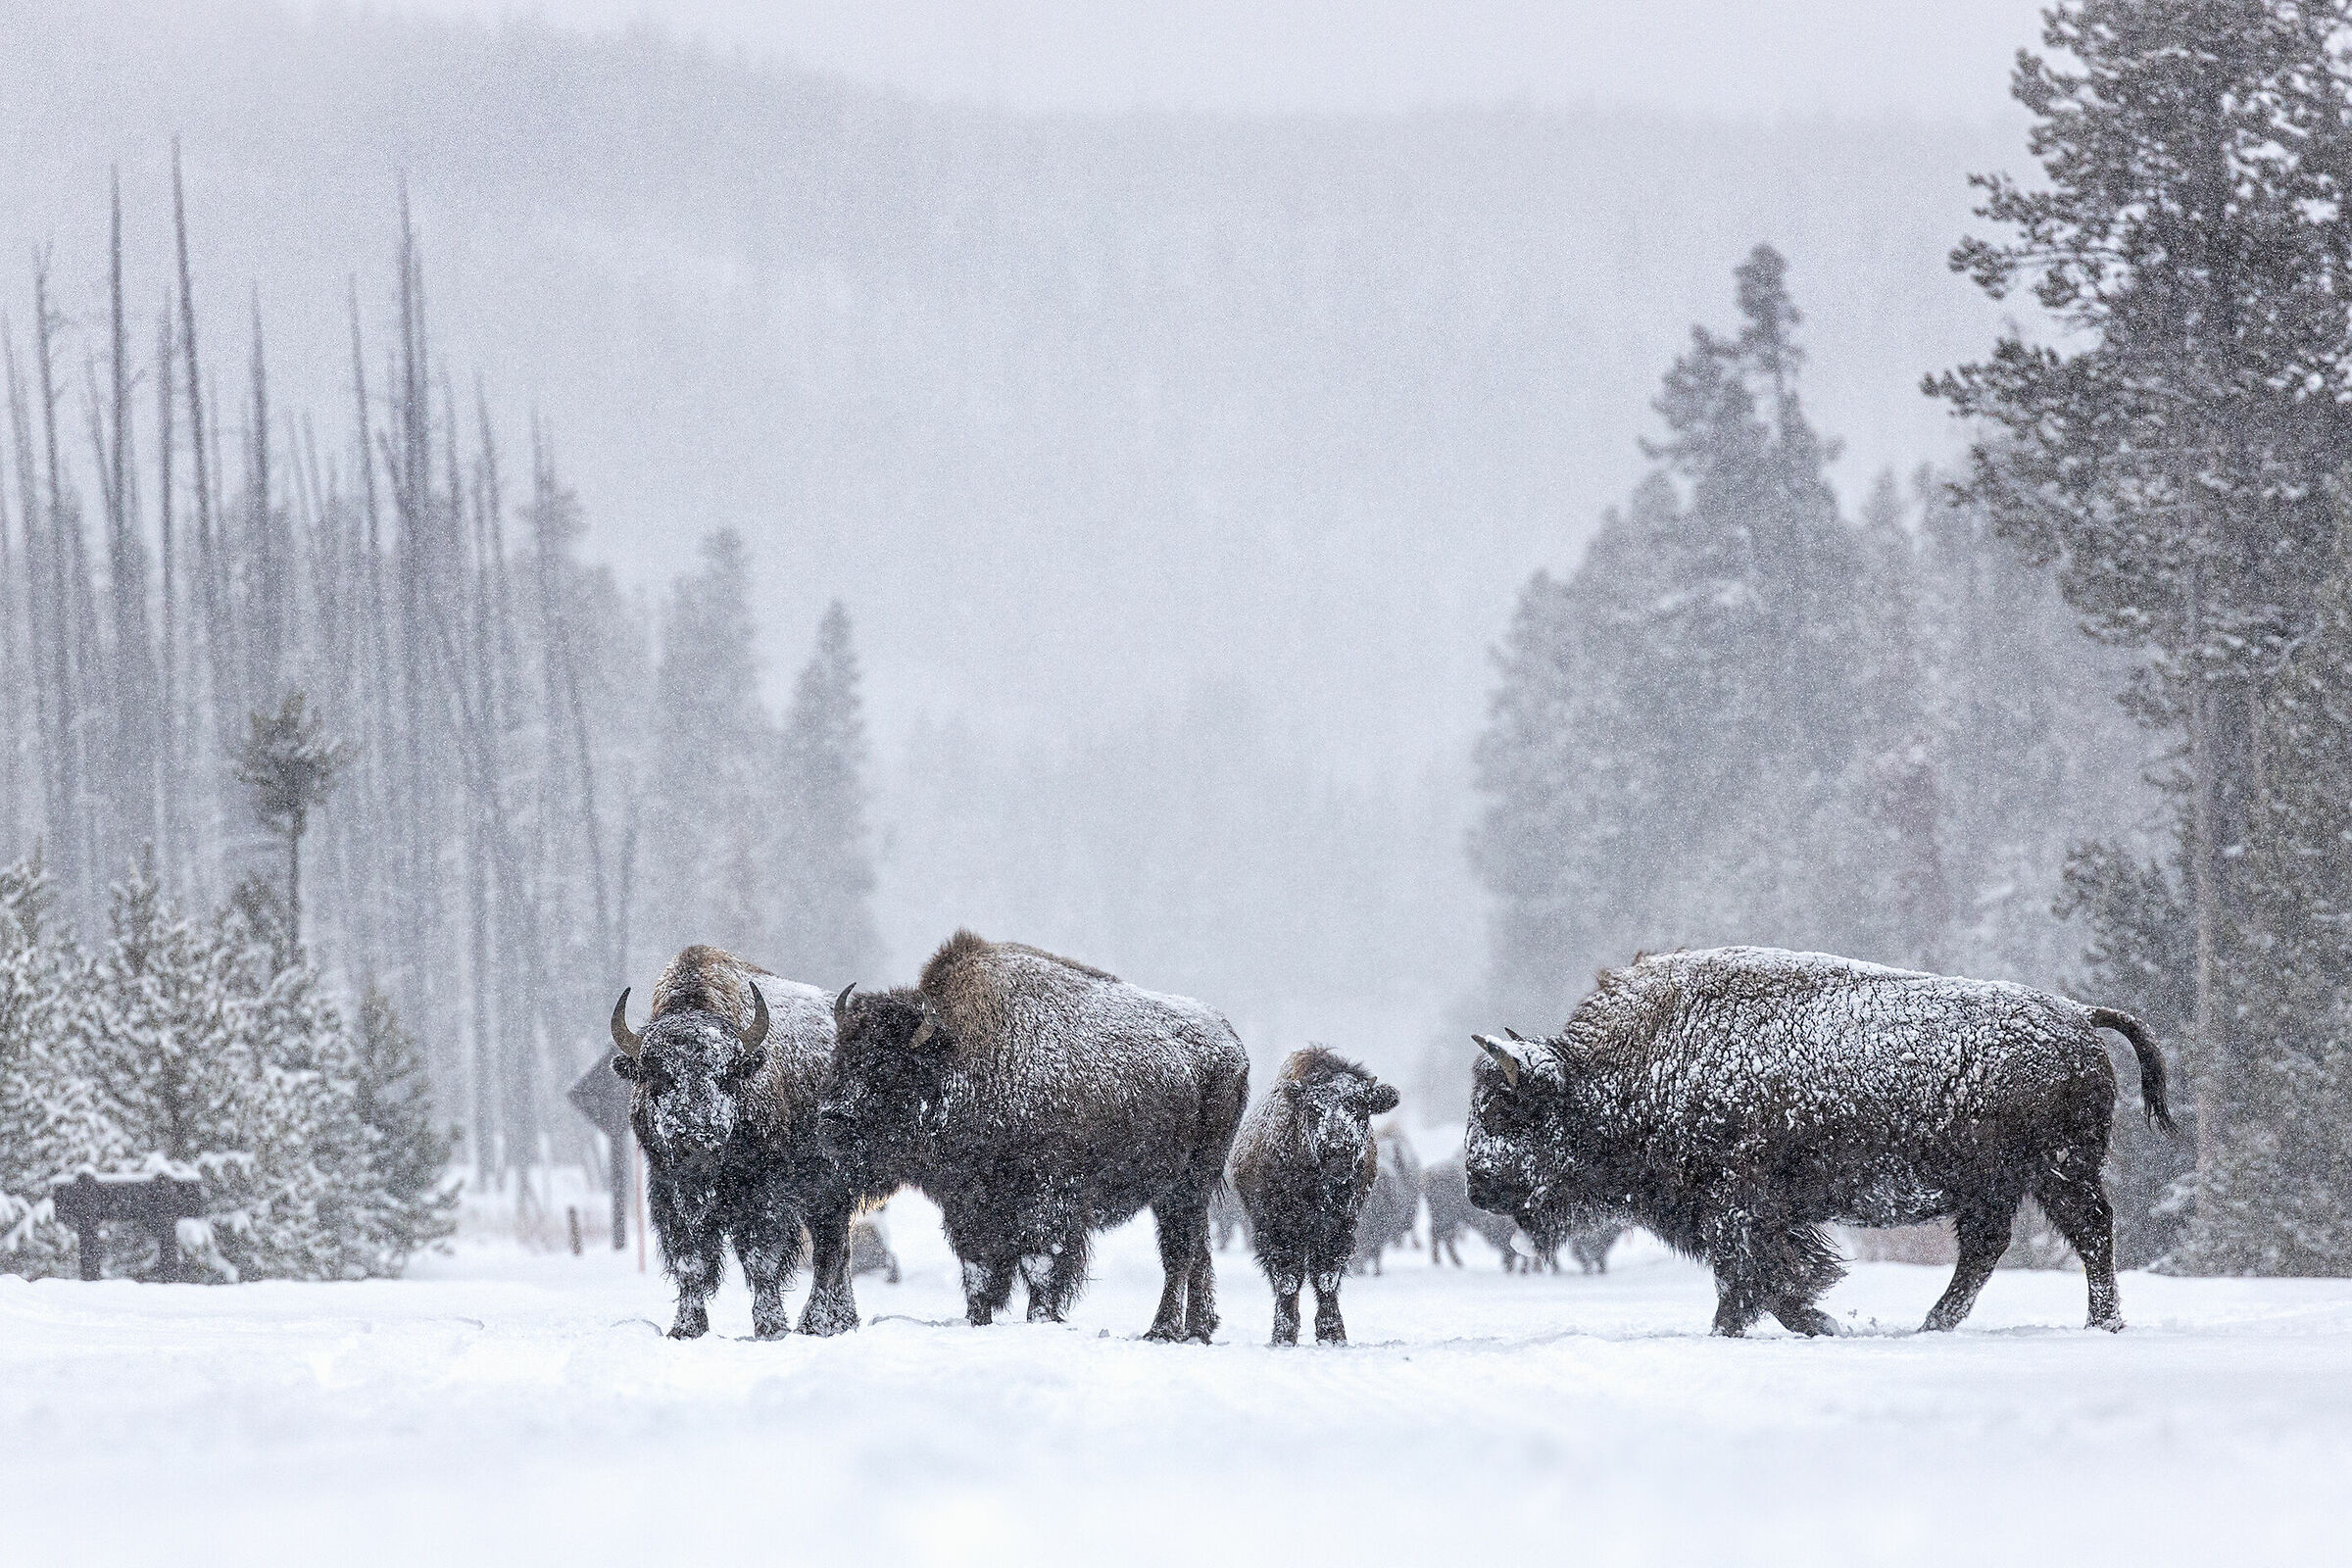 Bison' crossing in snow storm...